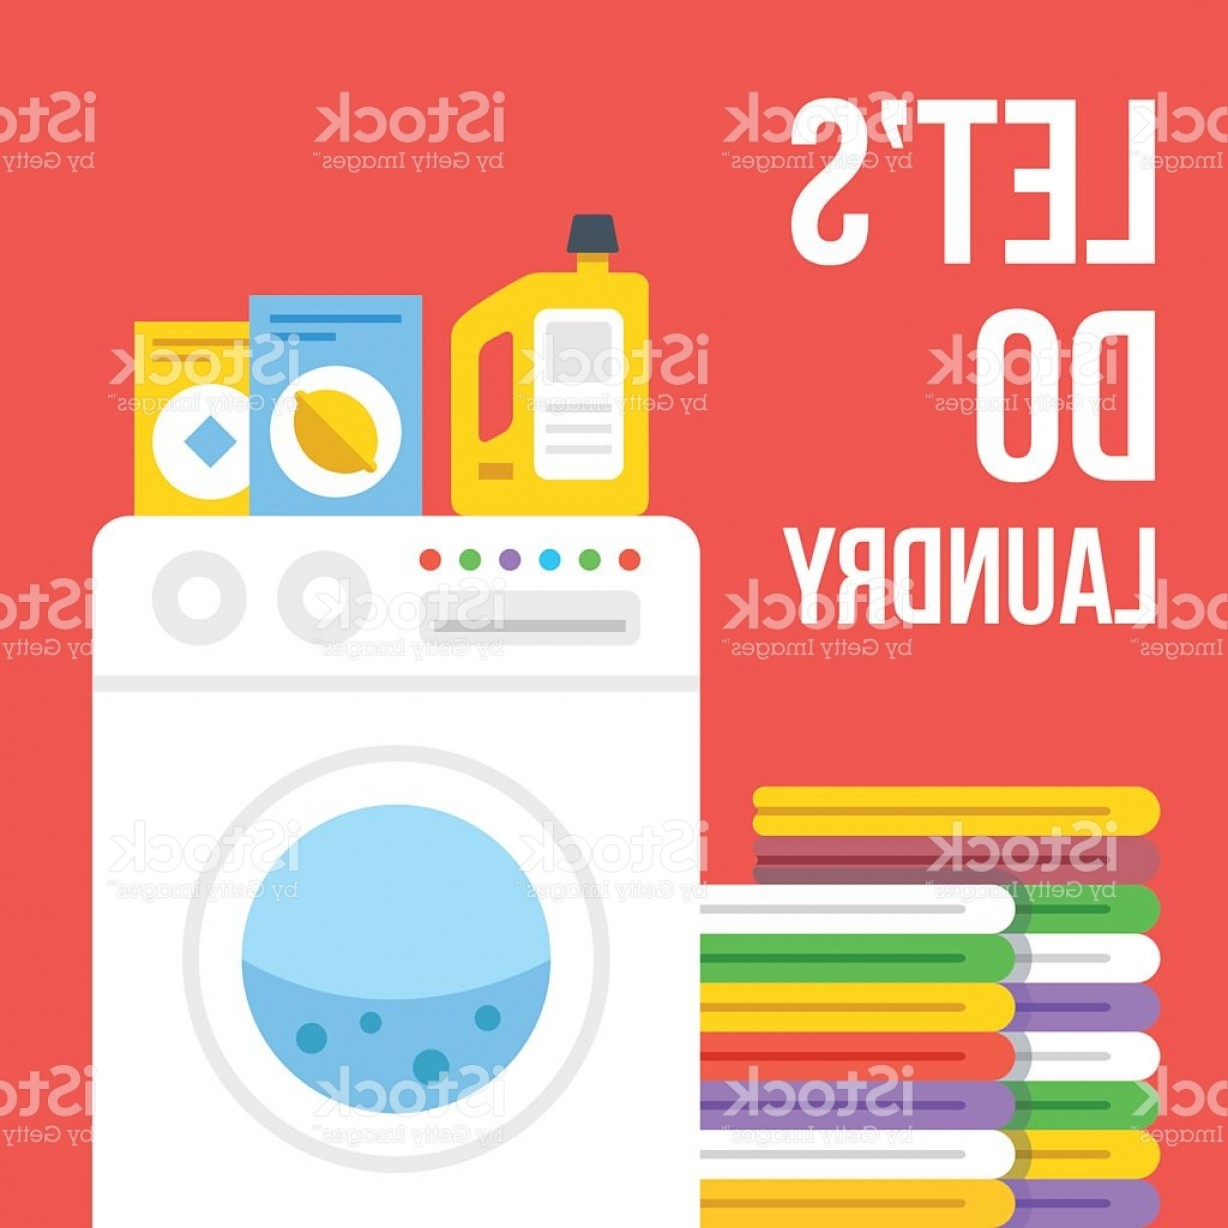 Clothes For Washing Vector: Laundry Flat Illustration Washing Machine Clothes Laundry Detergent Icons Set Gm